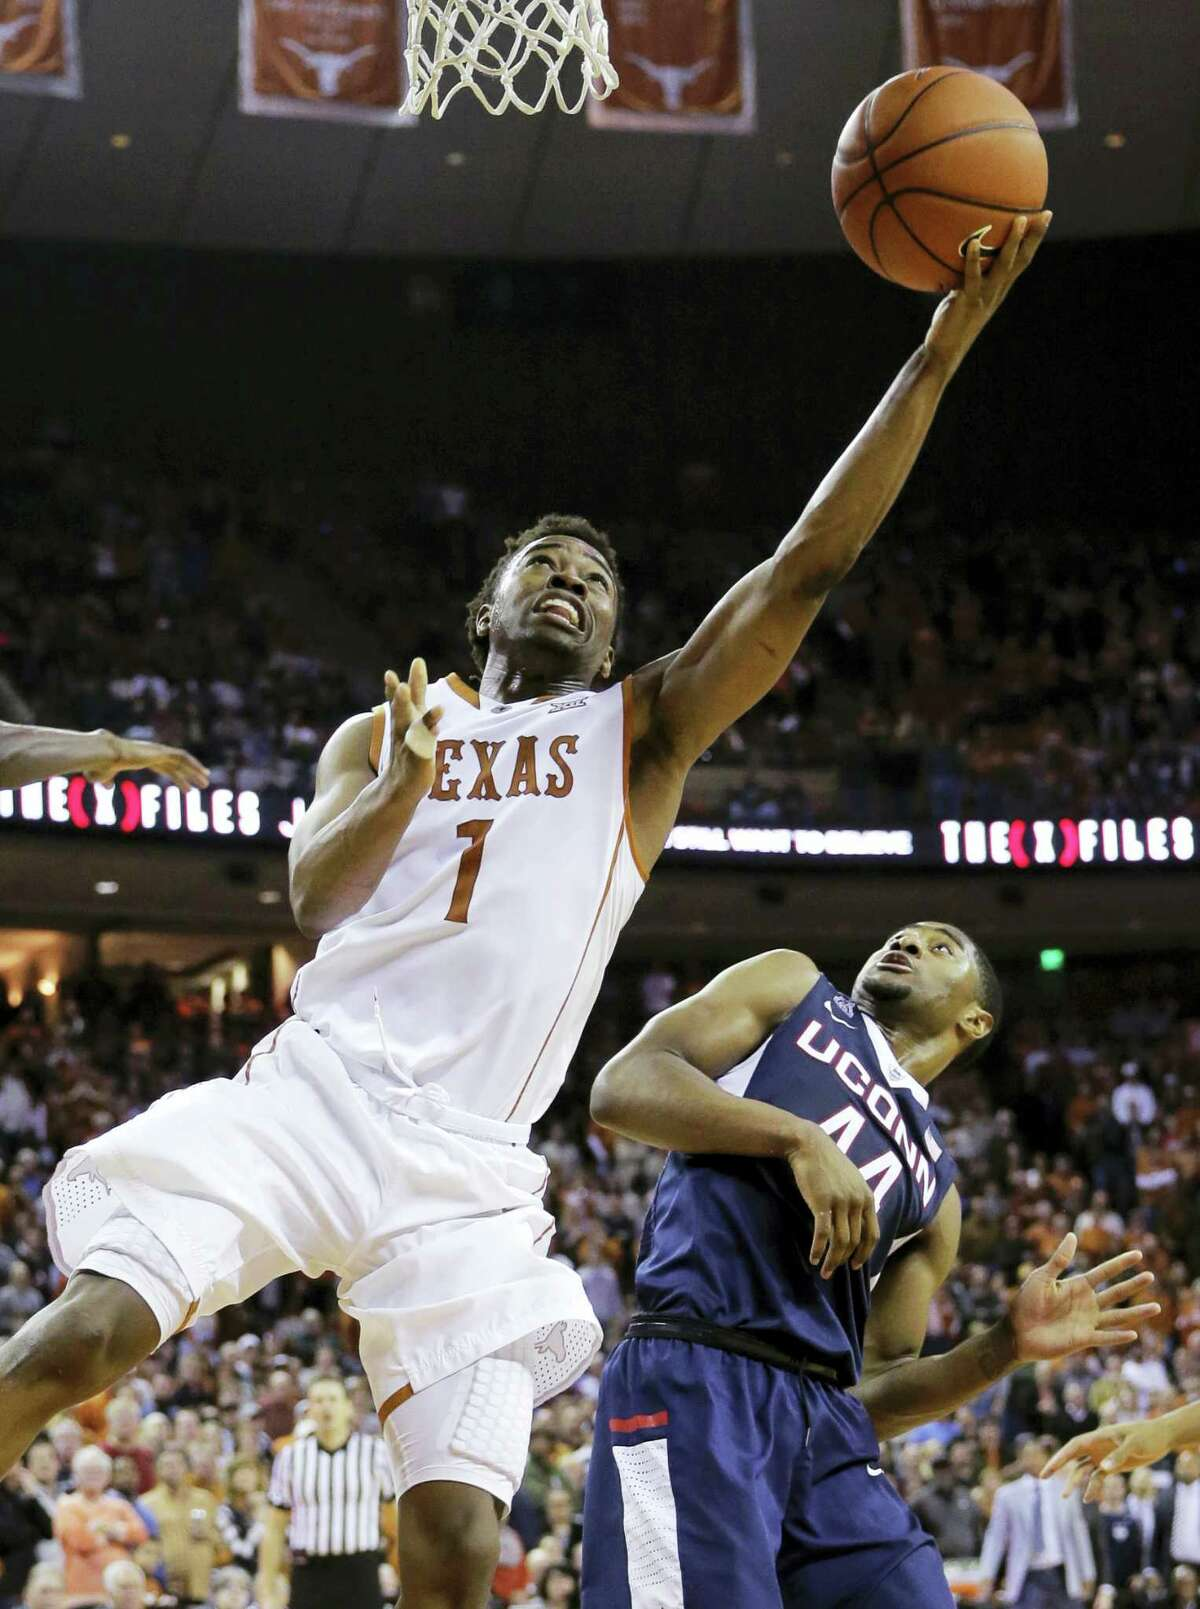 Texas guard Isaiah Taylor (1) shoots over Connecticut guard Rodney Purvis (44) during the second half of an NCAA college basketball game Tuesday, Dec. 29, 2015, in Austin, Texas. Connecticut won 71-66. (AP Photo/Eric Gay)